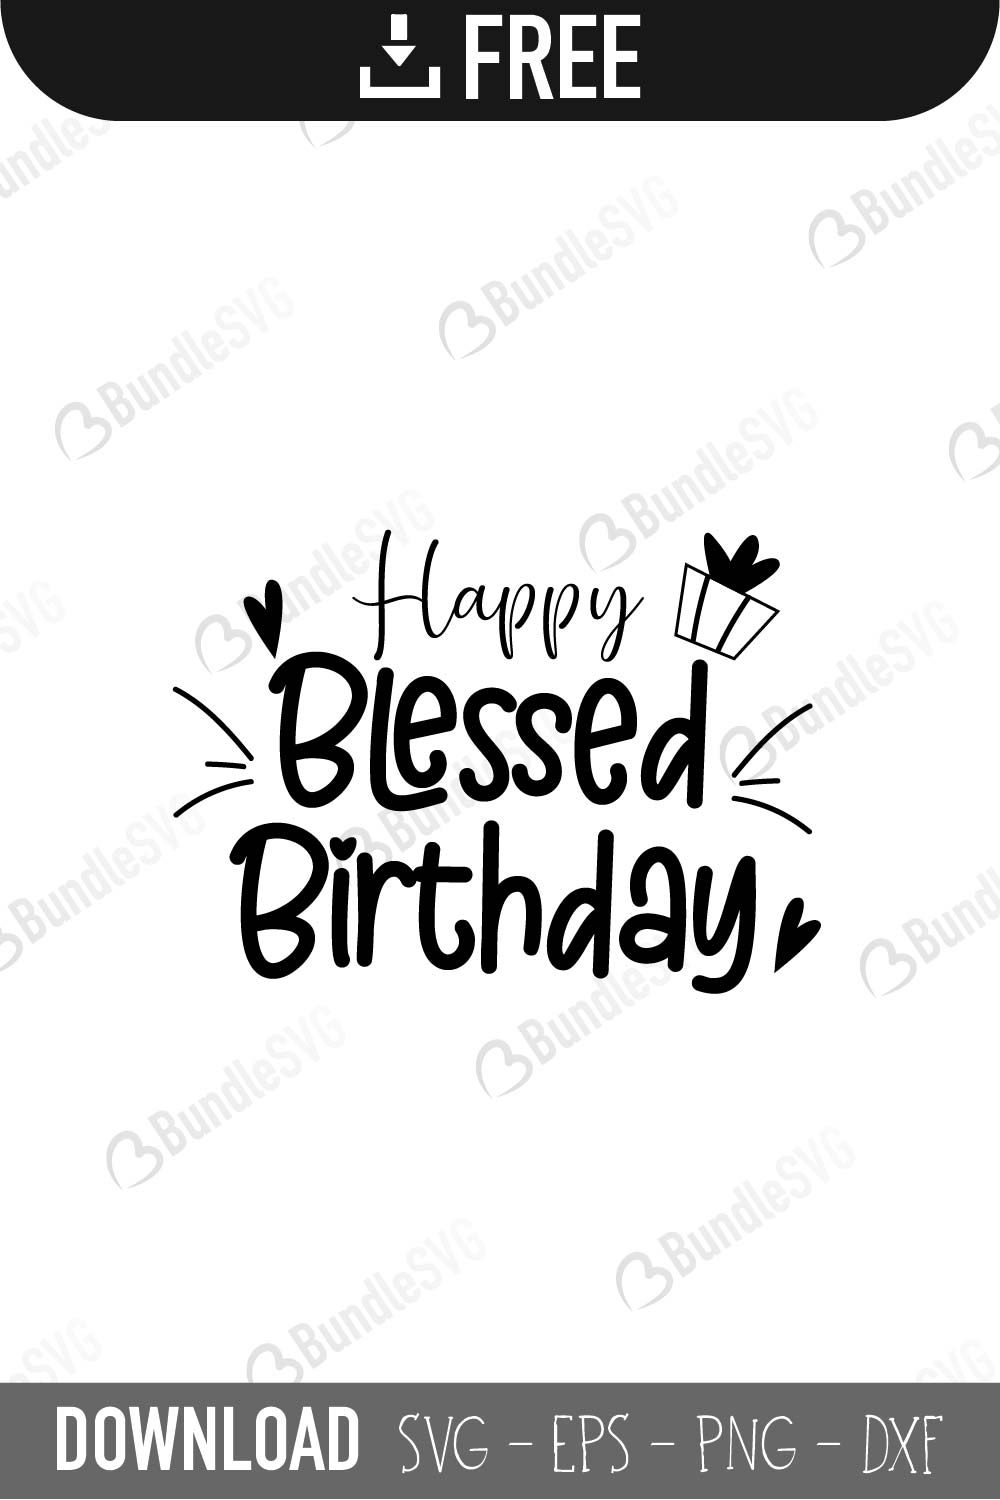 Download Birthday SVG Cut Files Free Download | BundleSVG.com